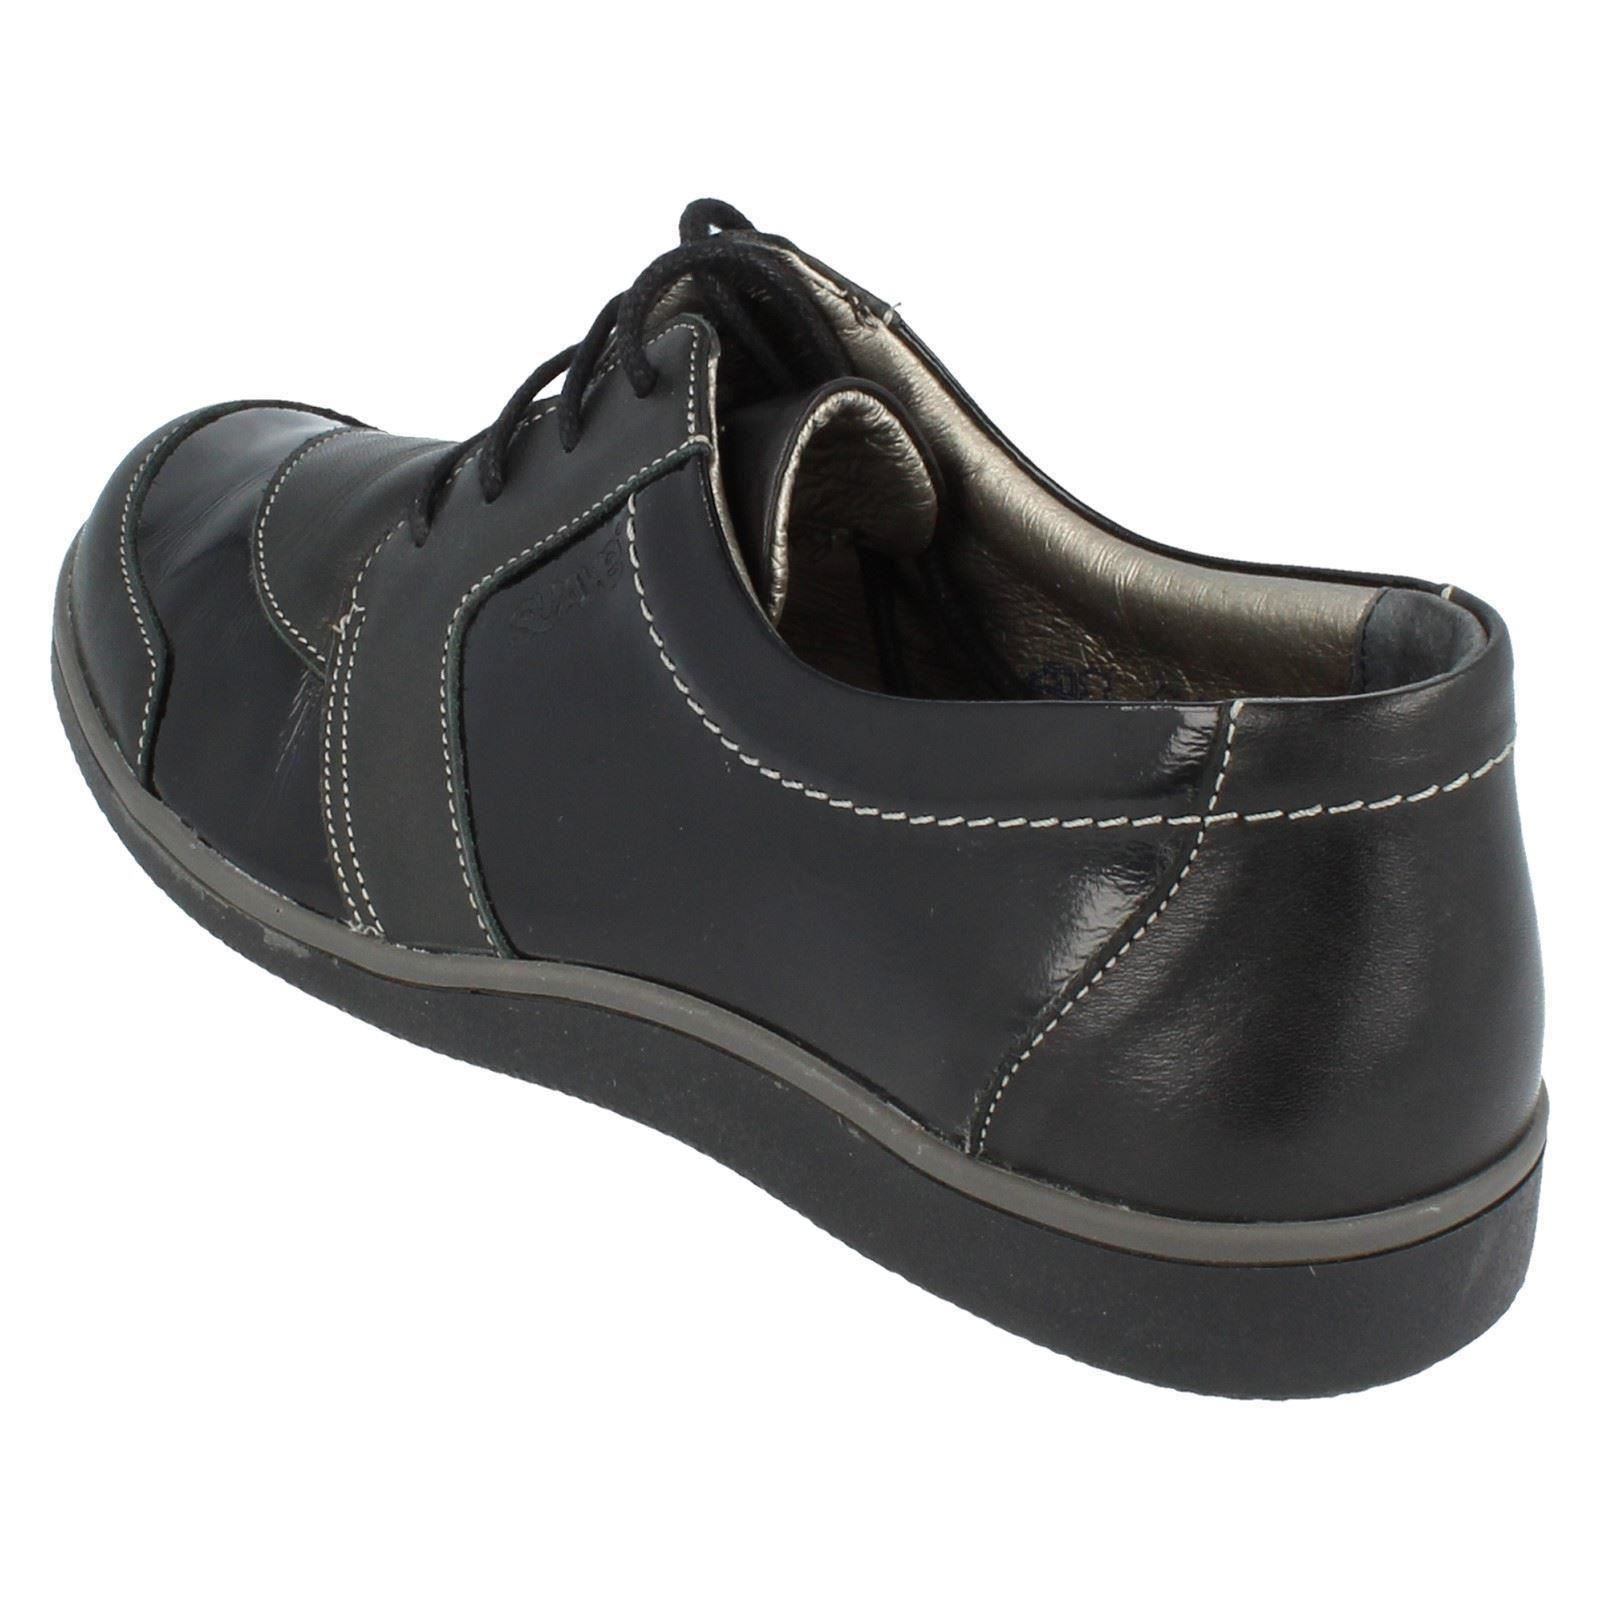 Giovanni - Zapatos de cordones para hombre Schwarz Lack (Slip-on), color, talla 40 UE / 6 GB